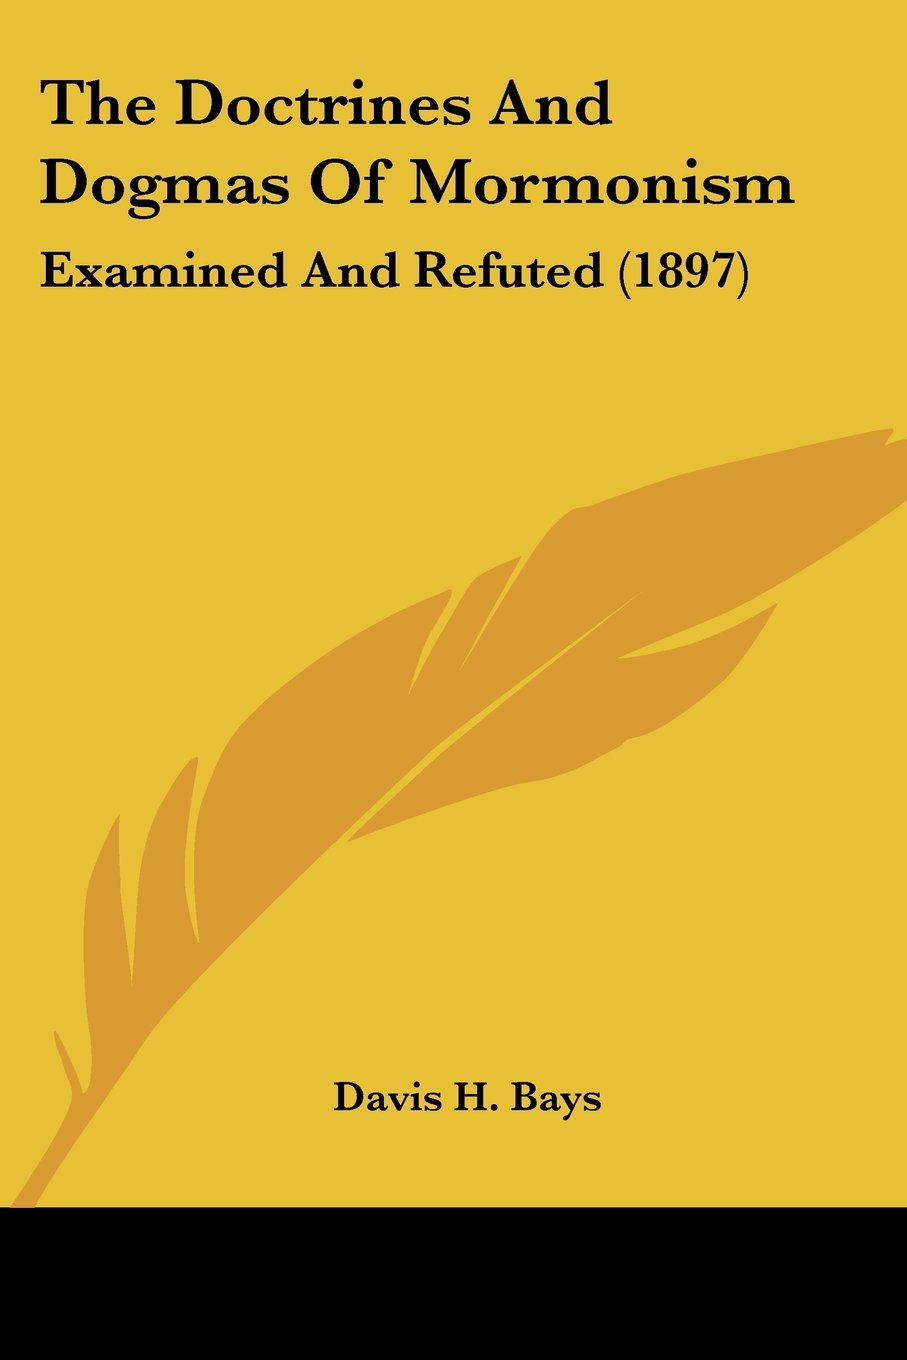 The Doctrines And Dogmas Of Mormonism: Examined And Refuted (1897) ebook